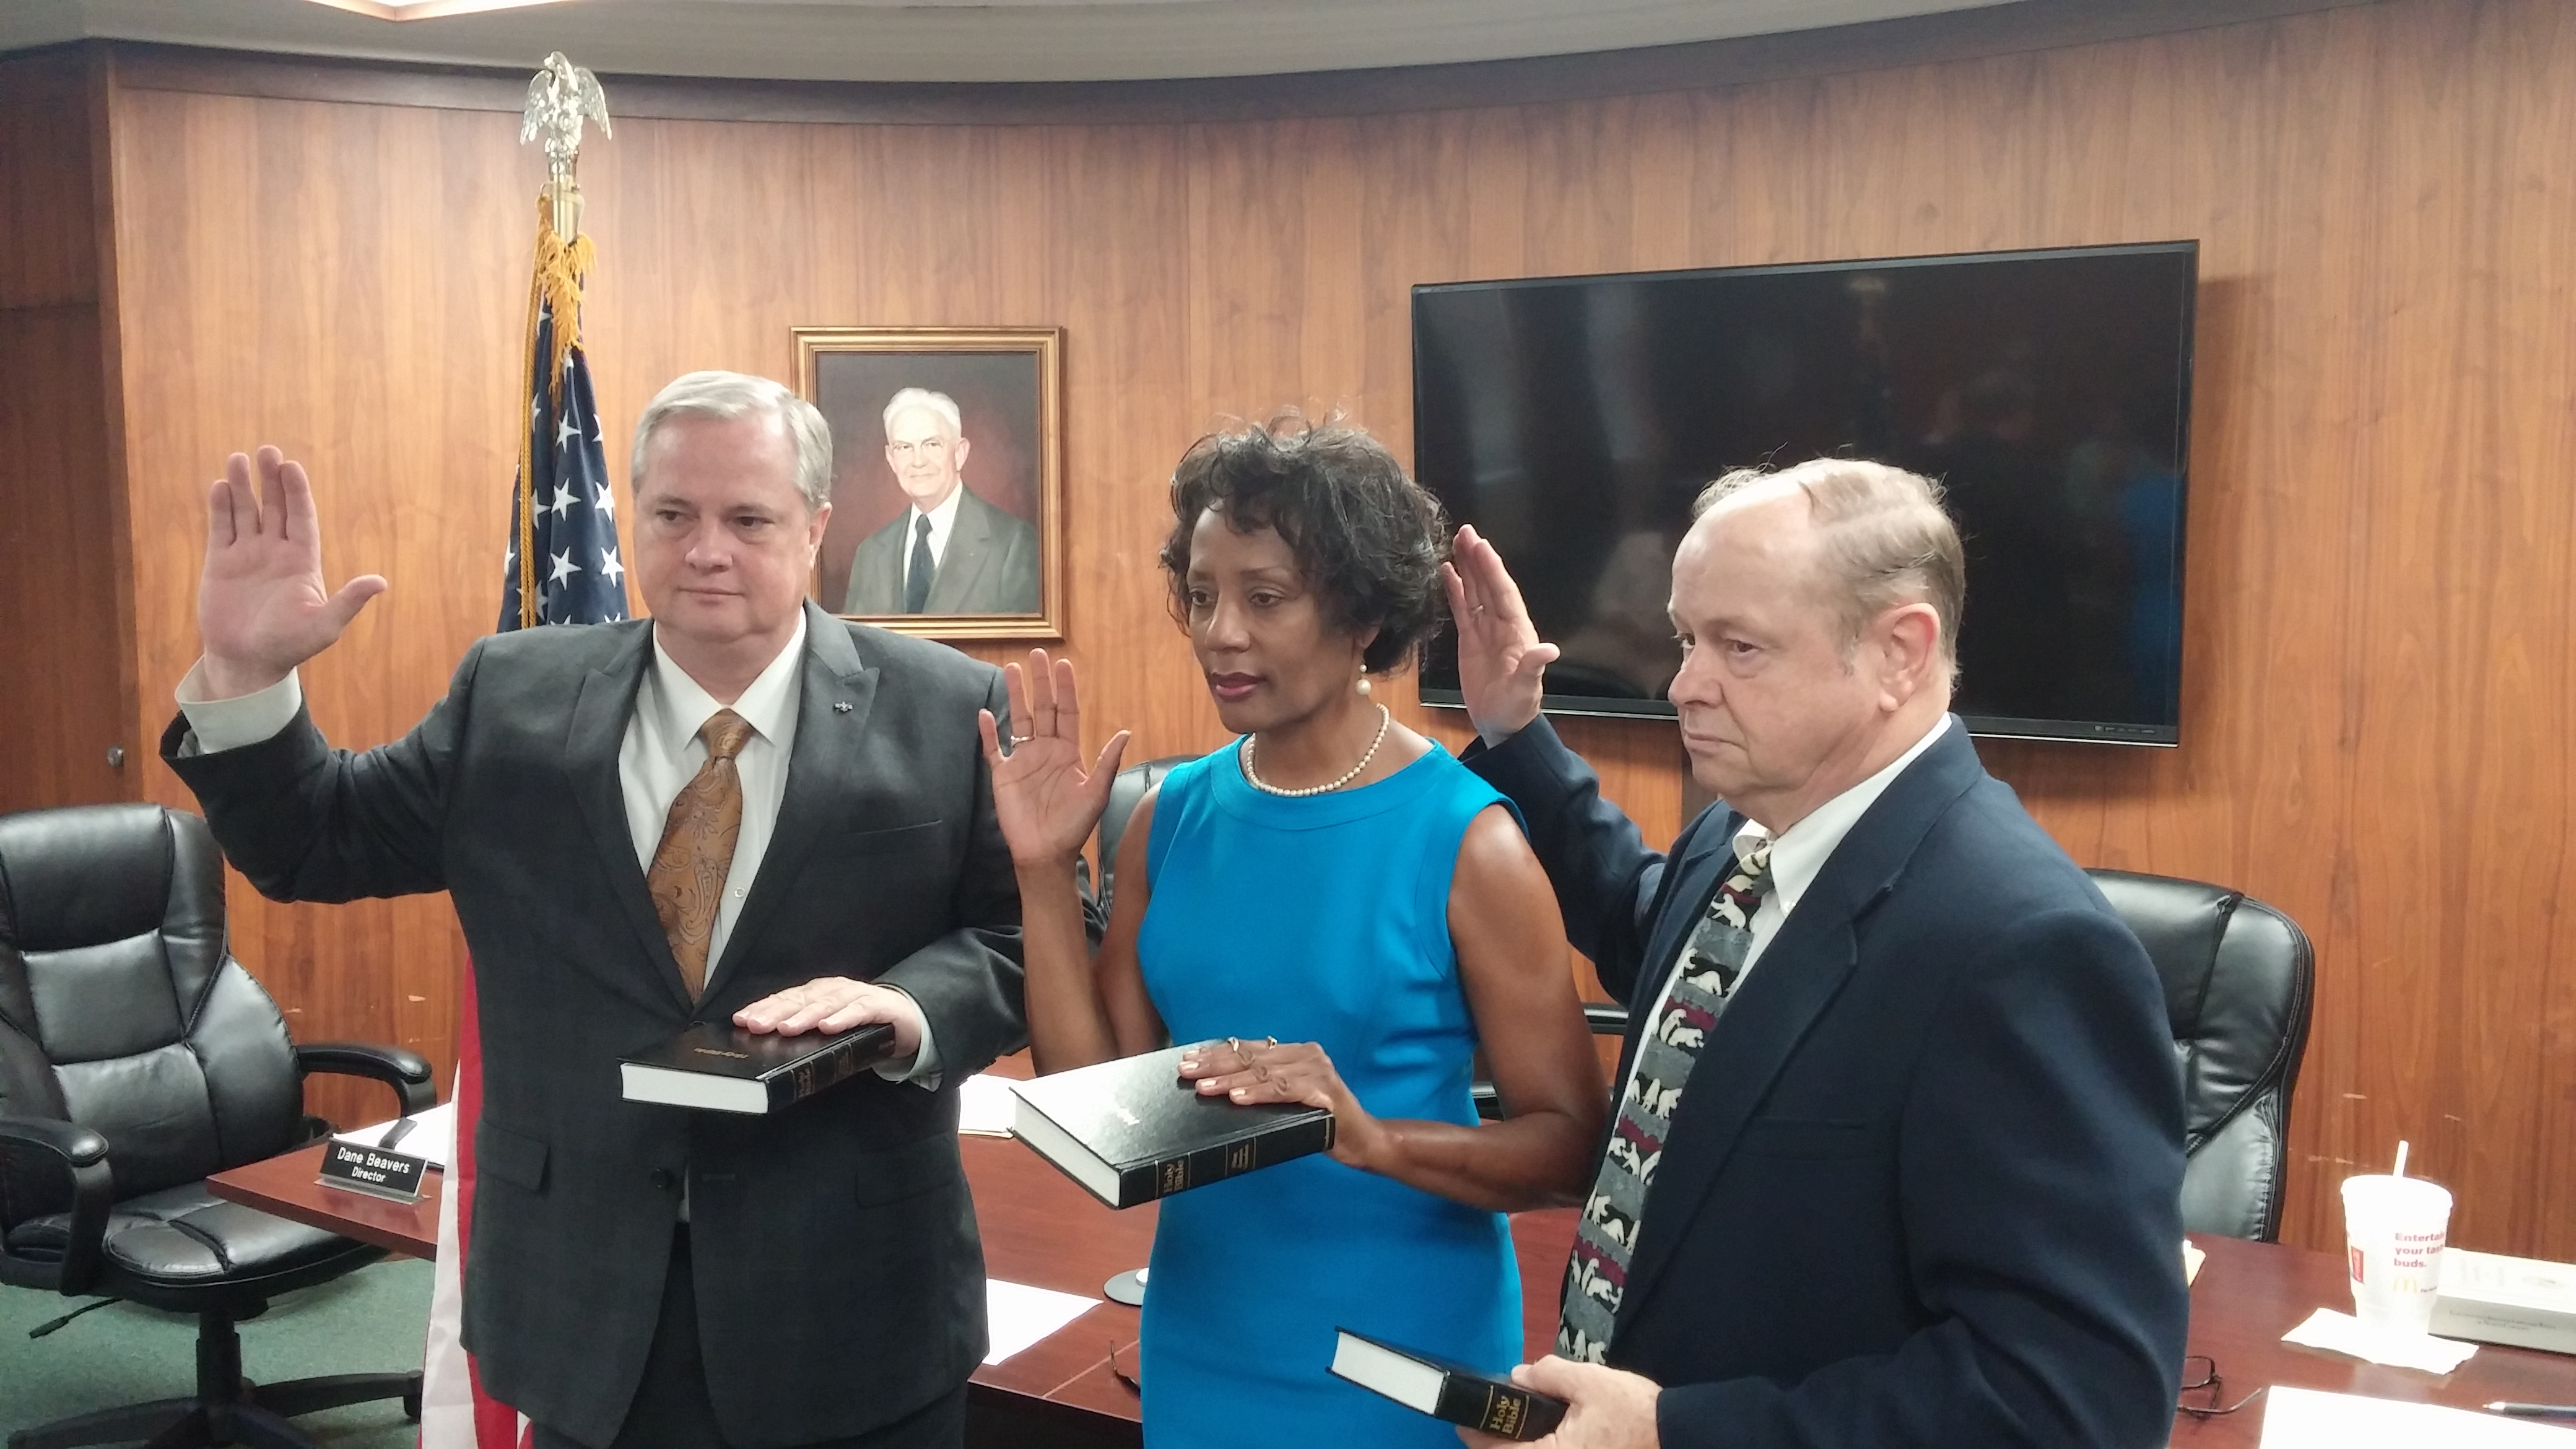 3 members of the Board of Elections being sworn into office.